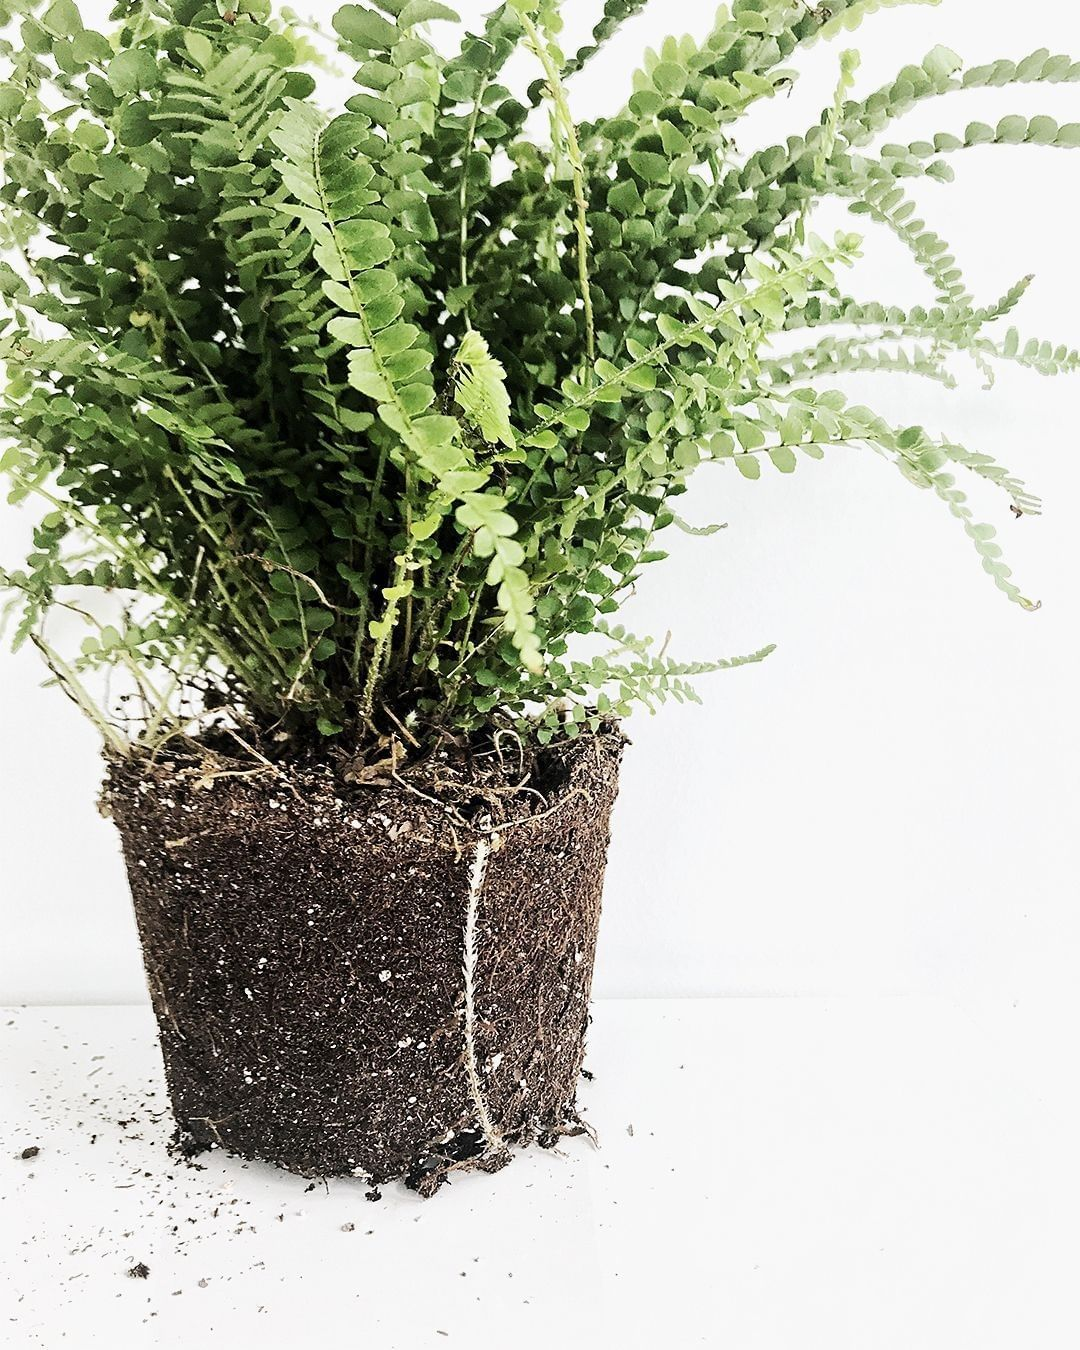 Lemon button fern with exposed soil